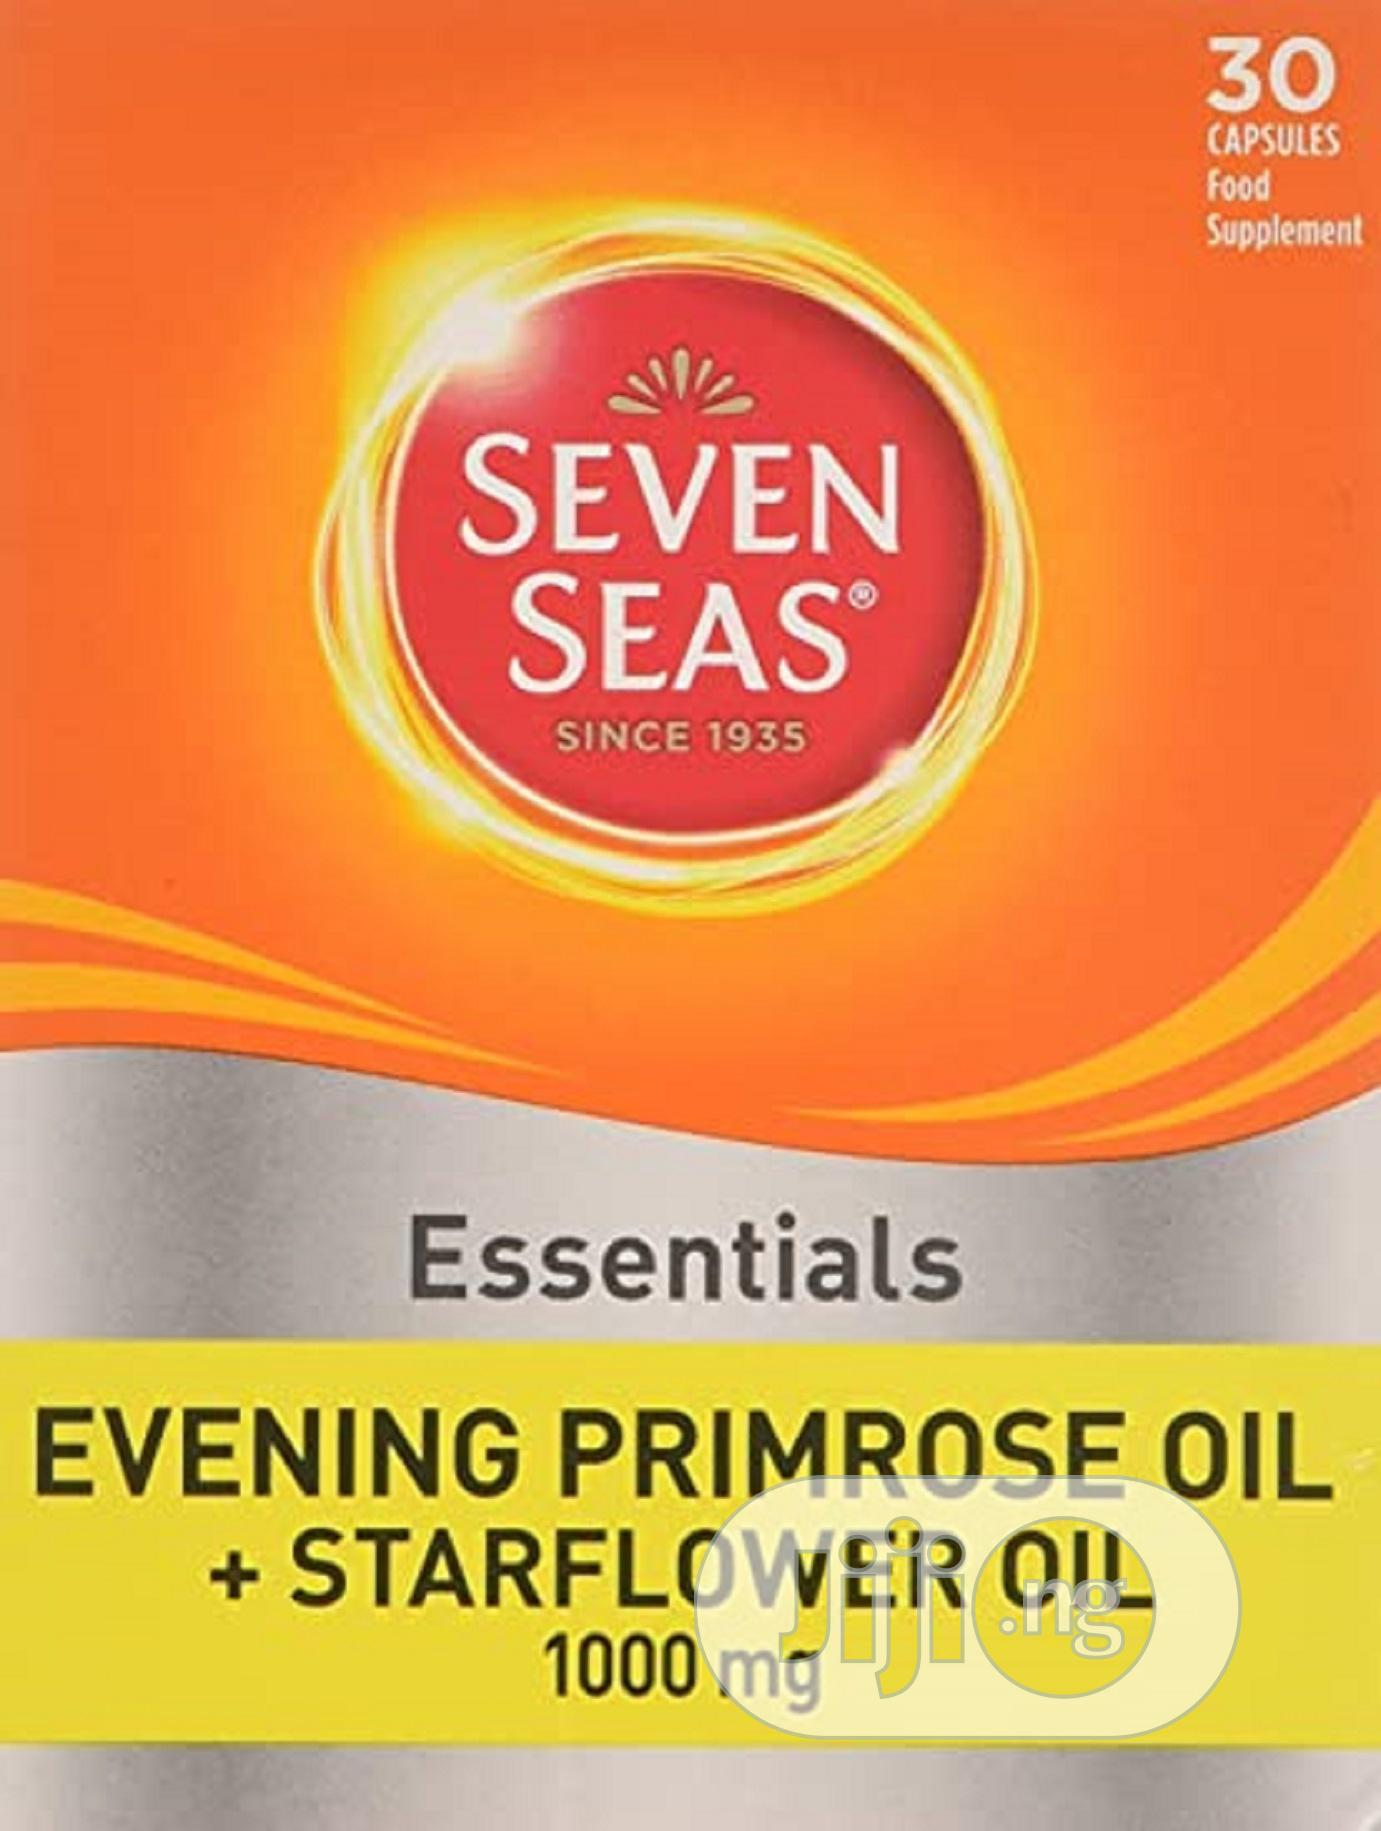 Seven Seas Evening Primrose Oil+Starflower Oil 1000mg 30caps